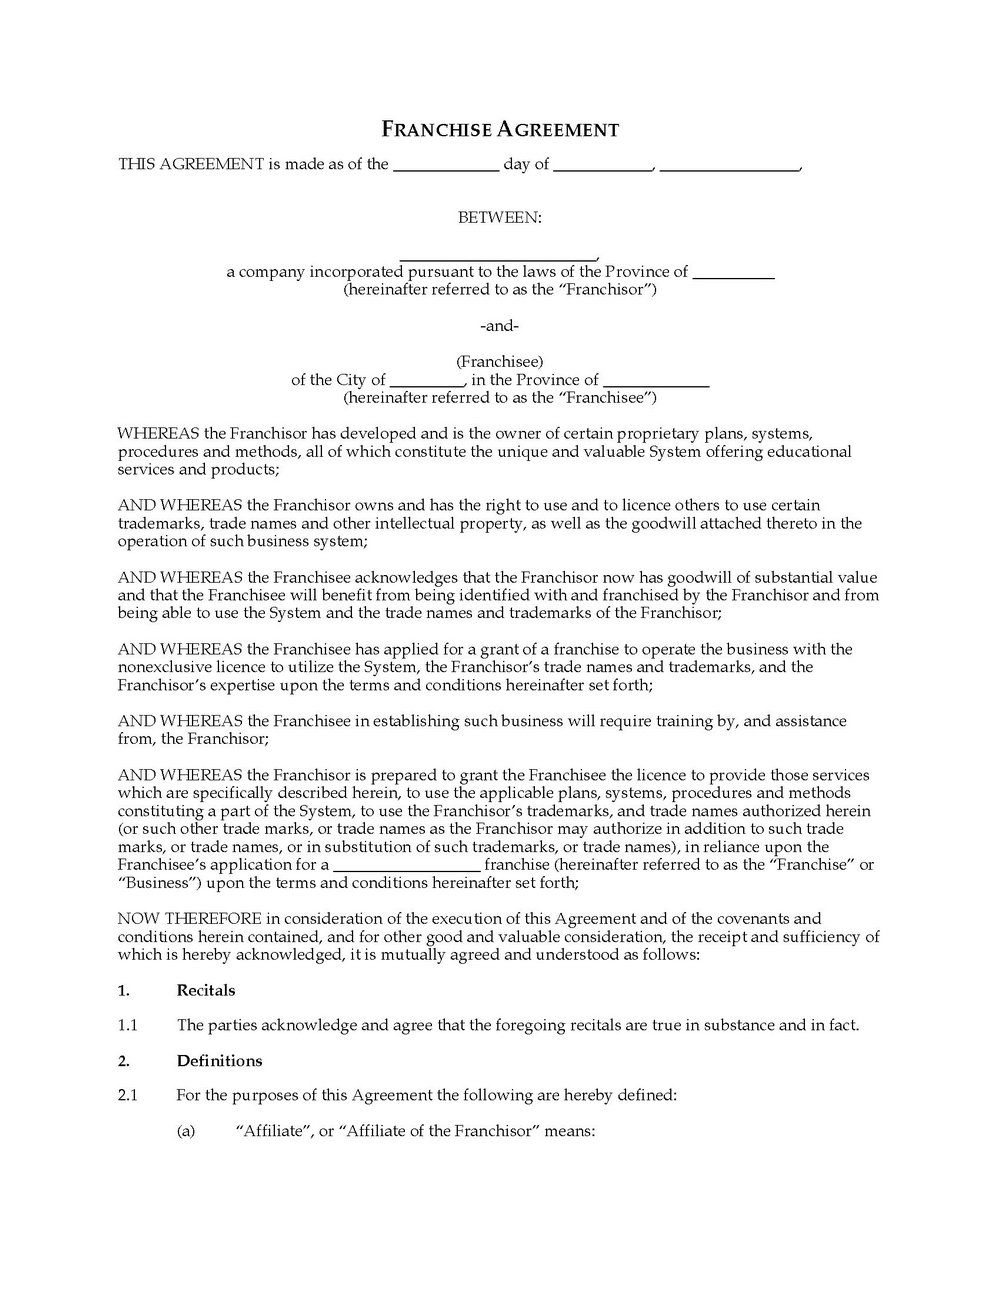 Franchise Agreement Template Uk